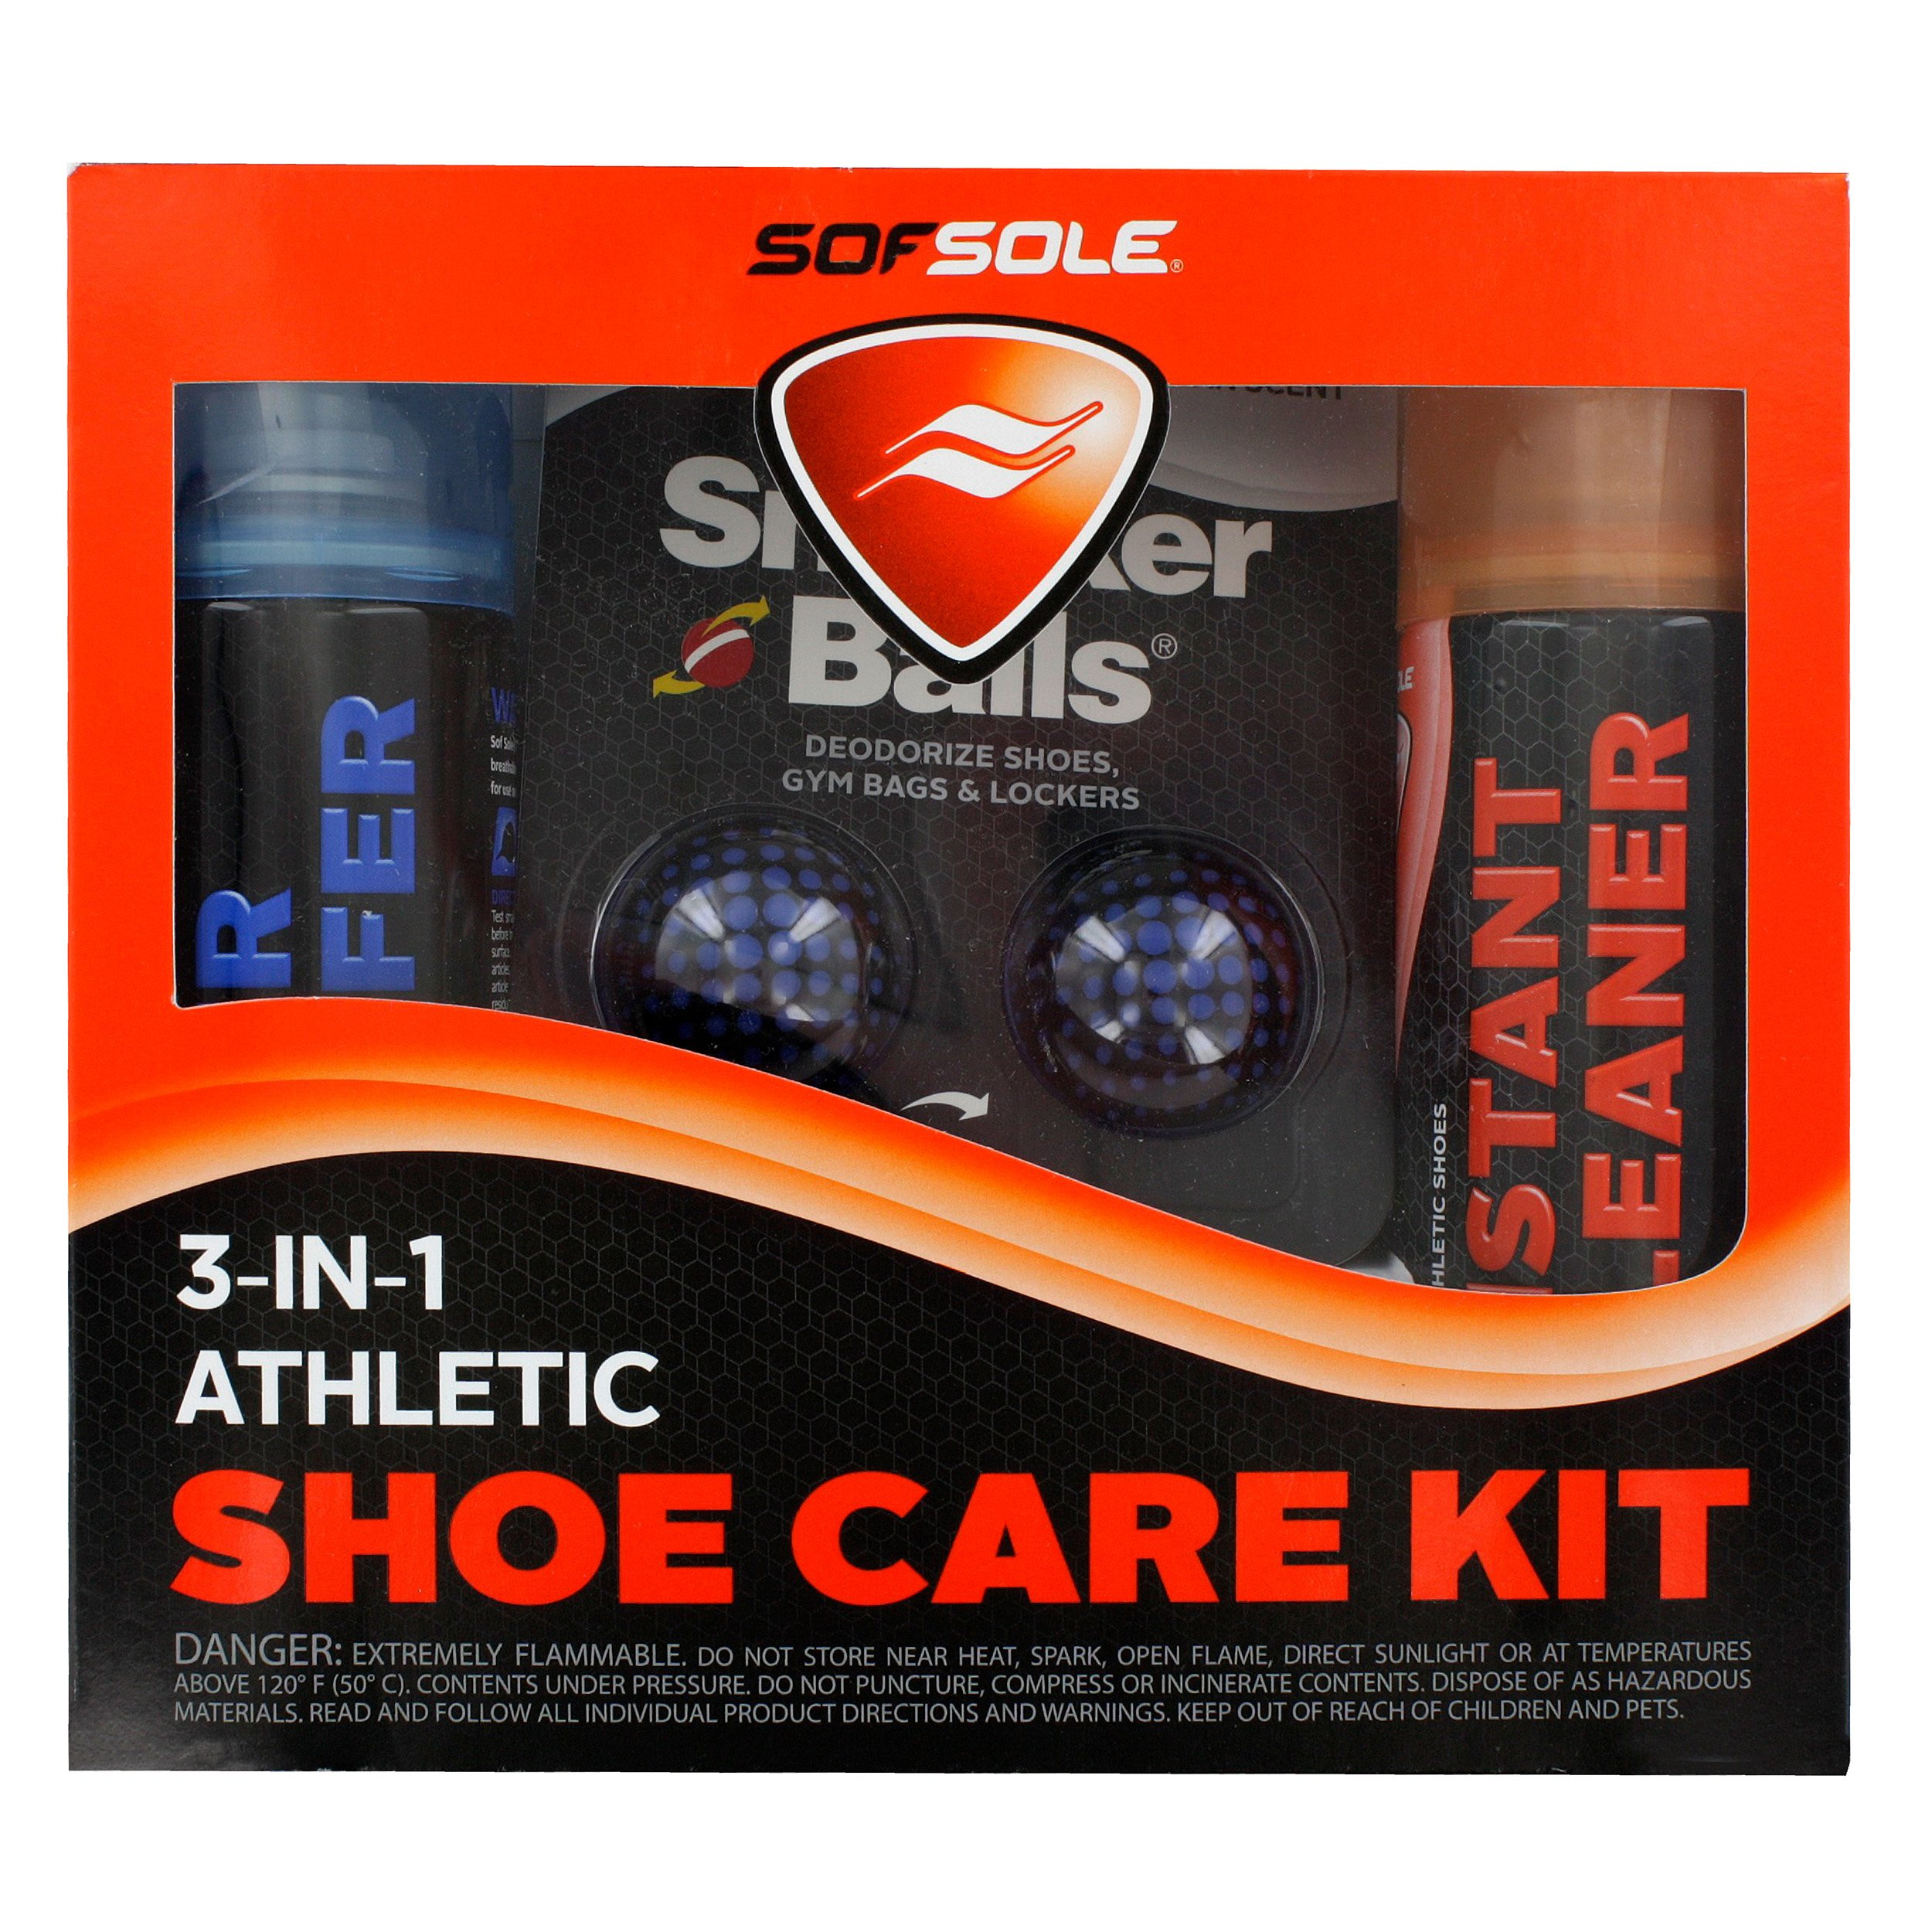 Sof Sole 3-IN-1 Athletic Shoe Care Kit with Waterproof Spray, Cleaner, and Deodorizing Sneaker Balls